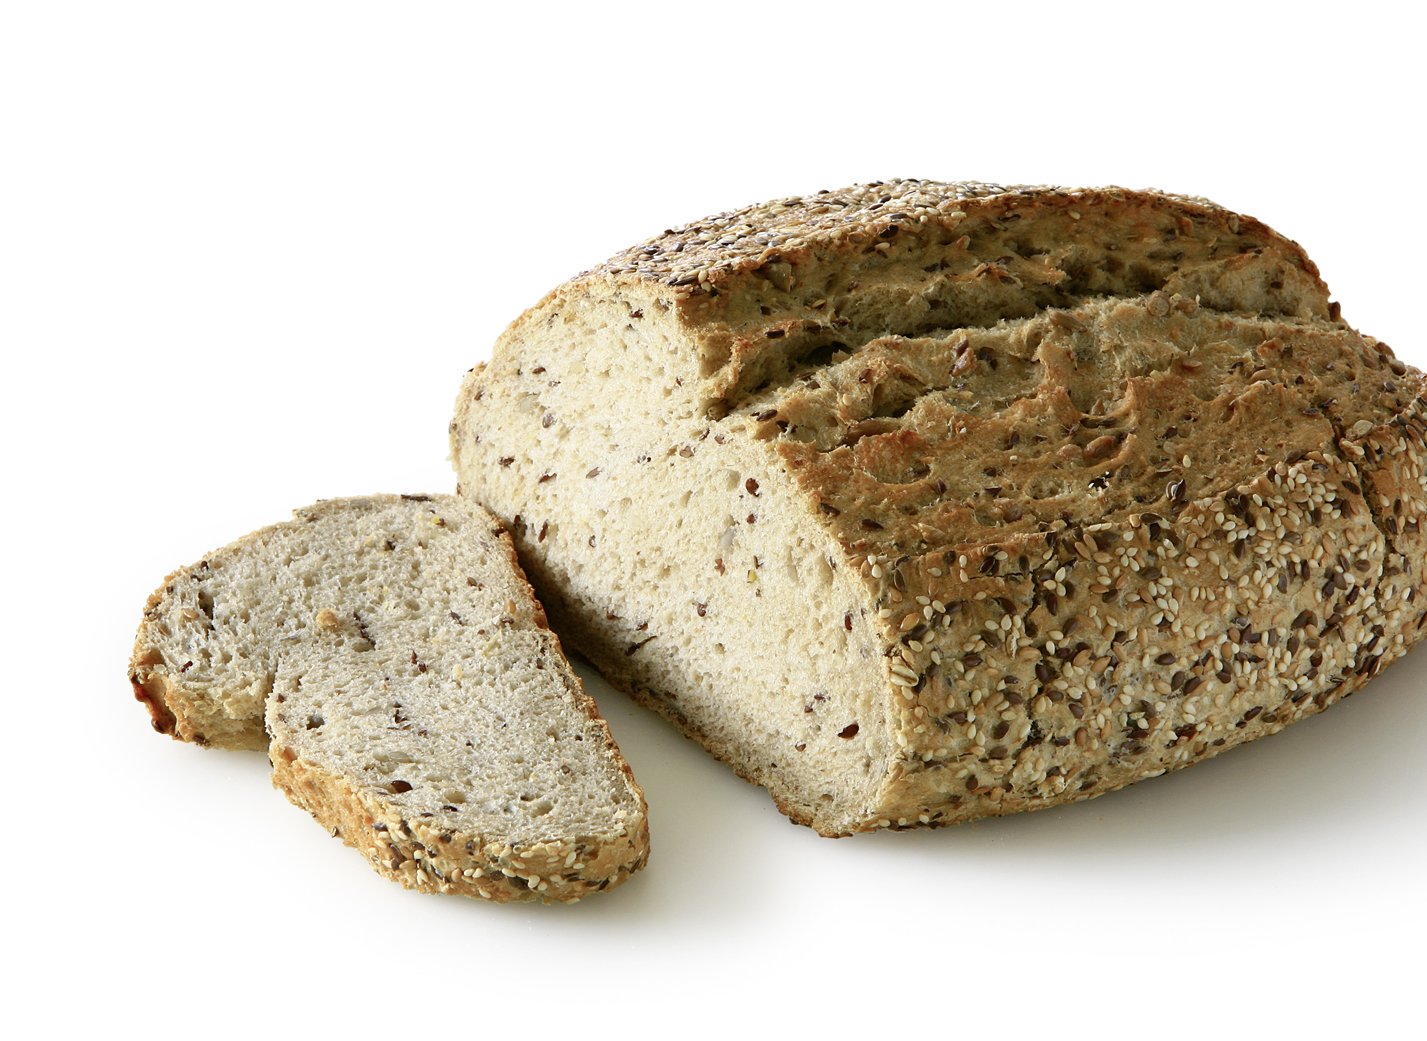 Multi Grain Bread - Unmolded multigrain bread with light and dark linseeds, sesame, sunflower seeds and oat flakes length: 26,5 cm